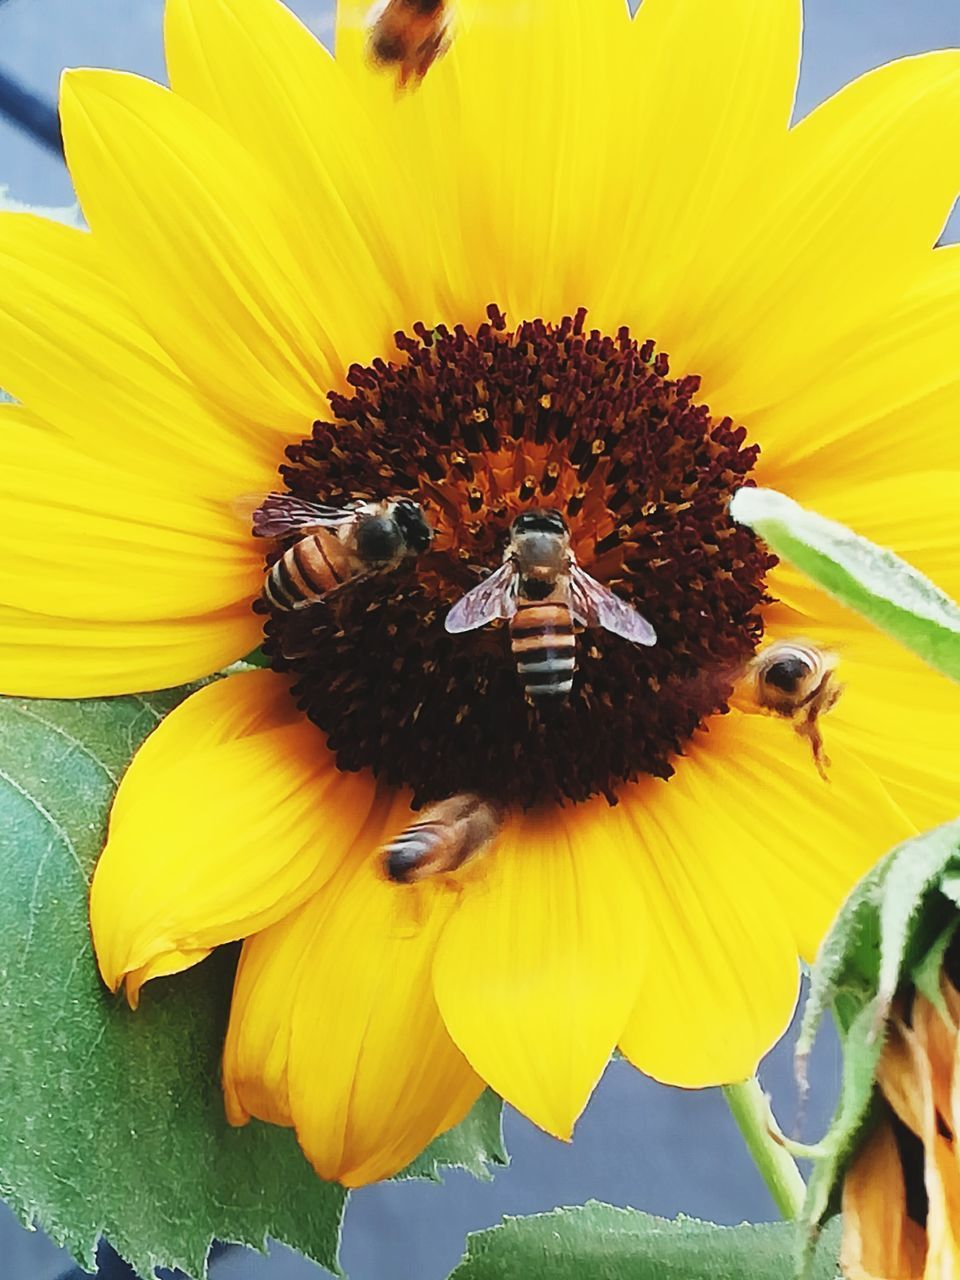 yellow, flower head, invertebrate, animal wildlife, petal, flower, insect, bee, animals in the wild, beauty in nature, fragility, flowering plant, vulnerability, inflorescence, pollen, animal themes, freshness, close-up, group of animals, growth, sunflower, pollination, no people, honey bee